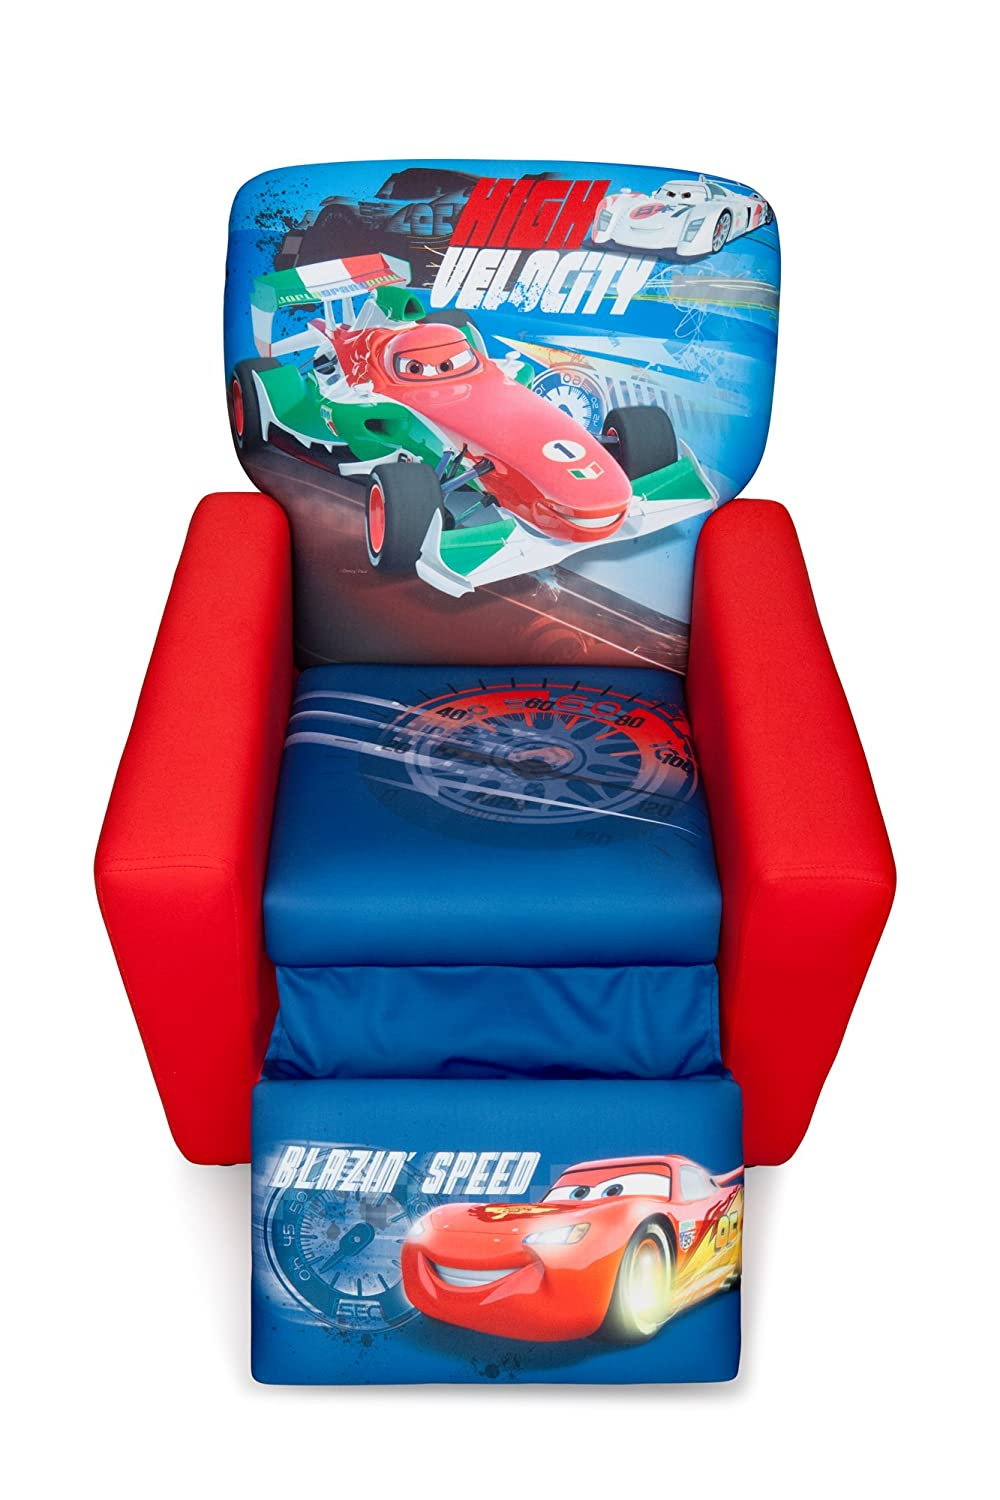 Disney Pixar Cars Upholstered Recliner; Disney Pixar Cars Upholstered Recliner ...  sc 1 st  eBay & Delta Disney Cars Upholstered Recliner Chair. | eBay islam-shia.org